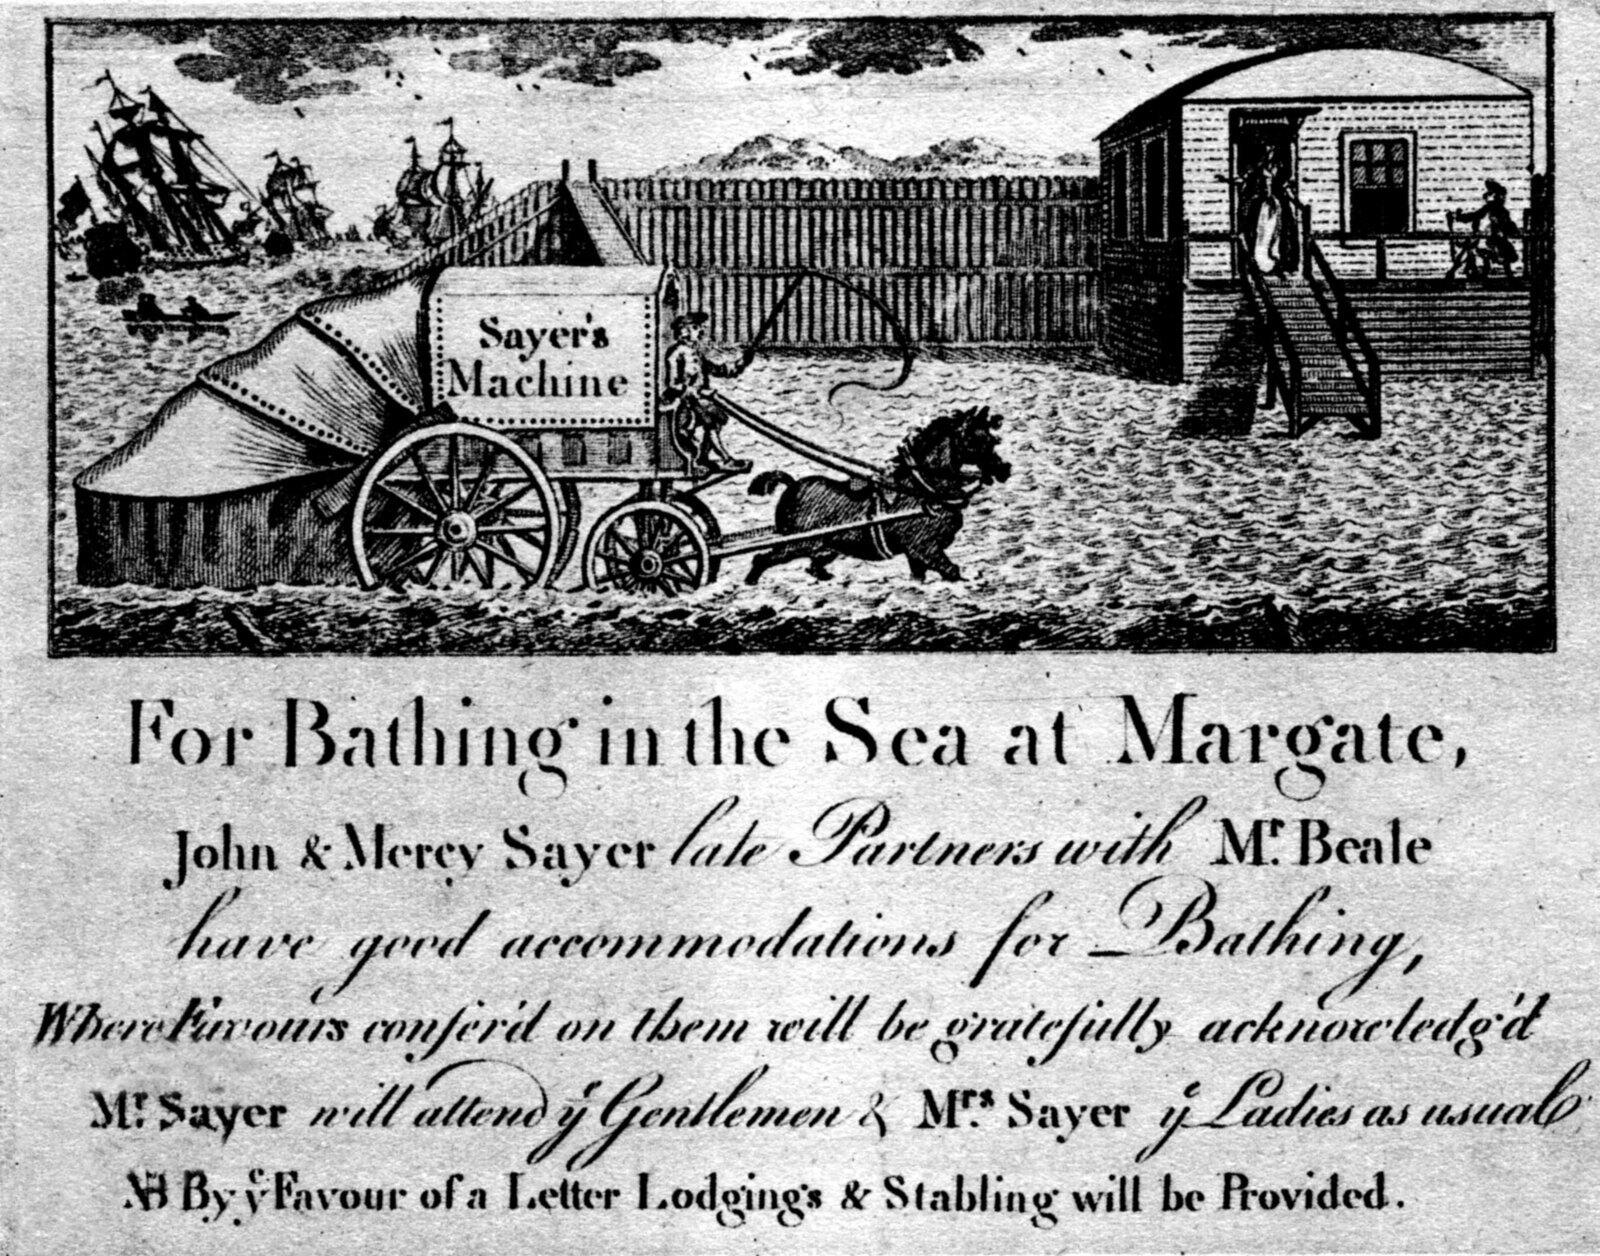 6: The Margate Naked Bathing Incident, 1801